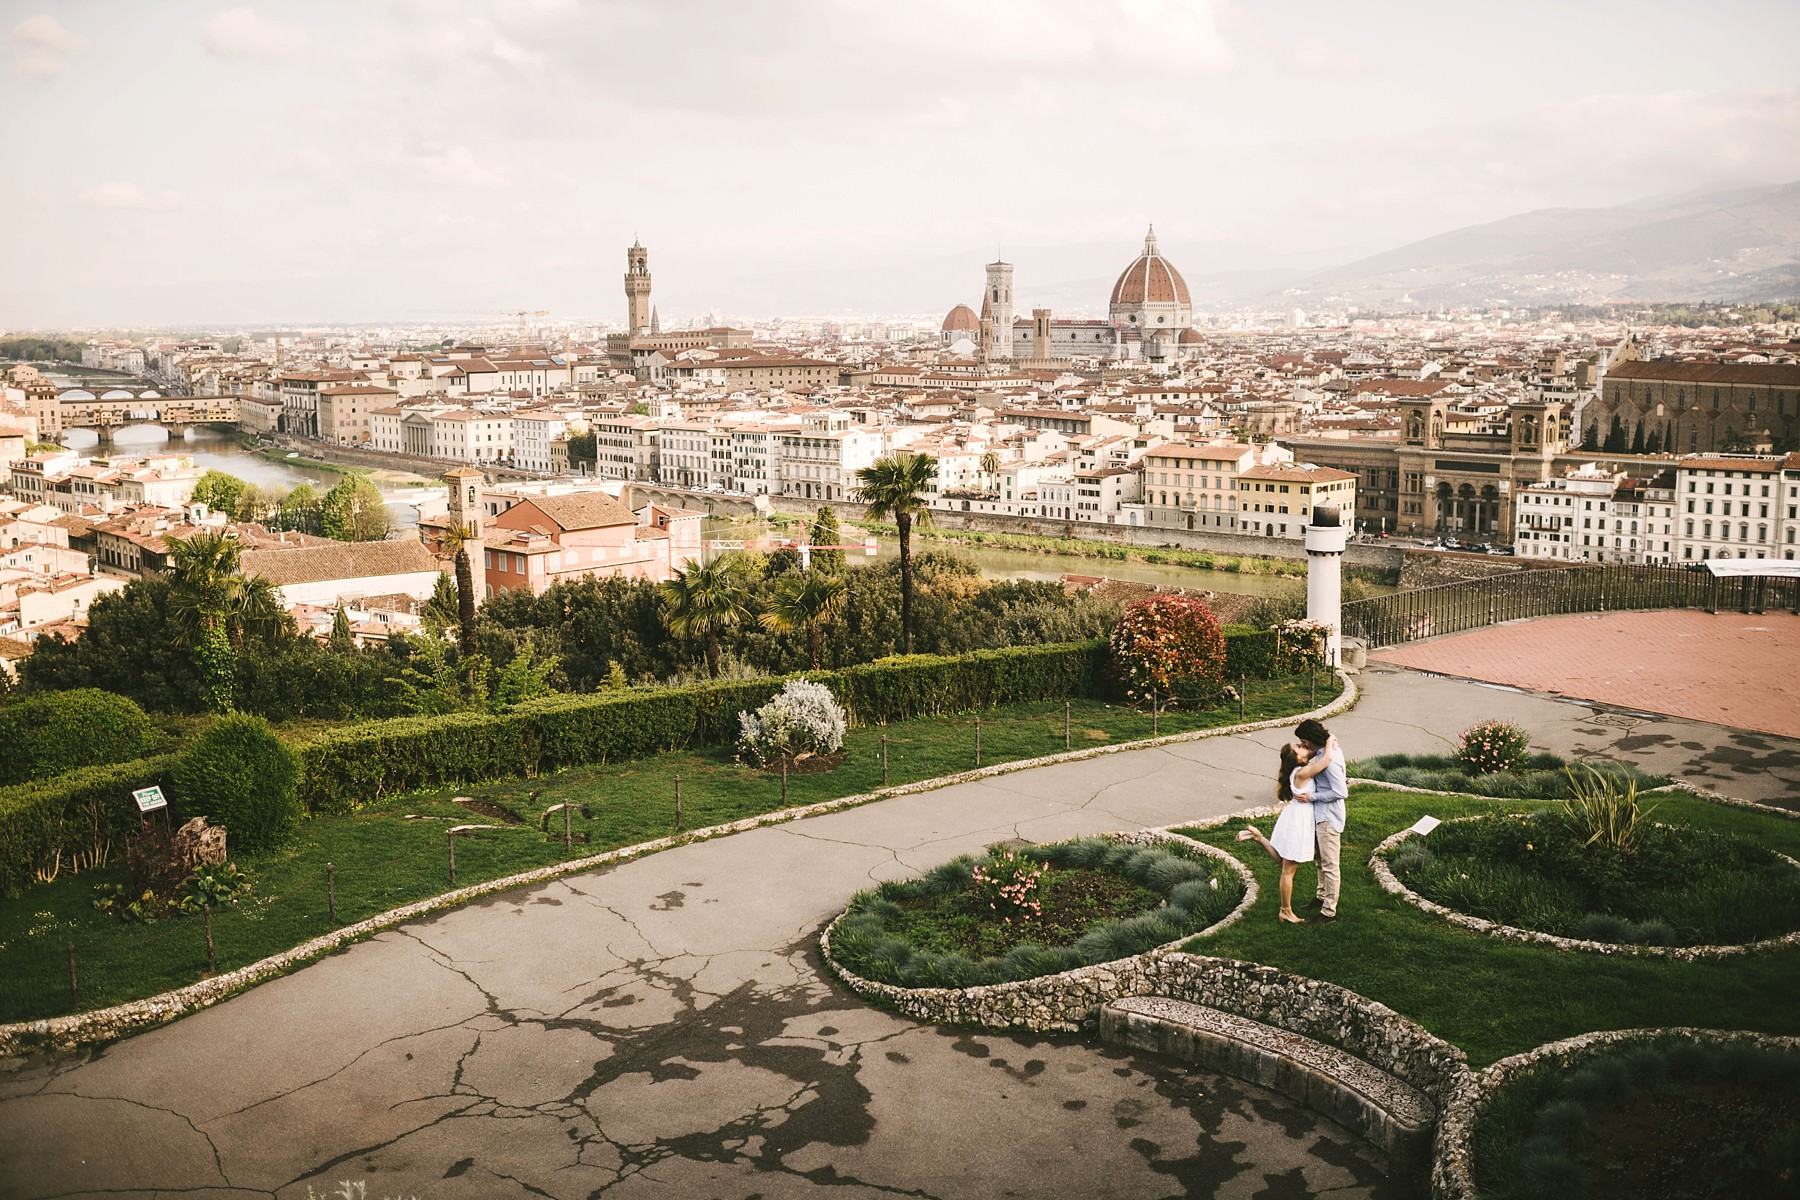 Romantic couple portrait panoramic photo at Piazzale Michelangelo, Florence at sunrise time with no tourists